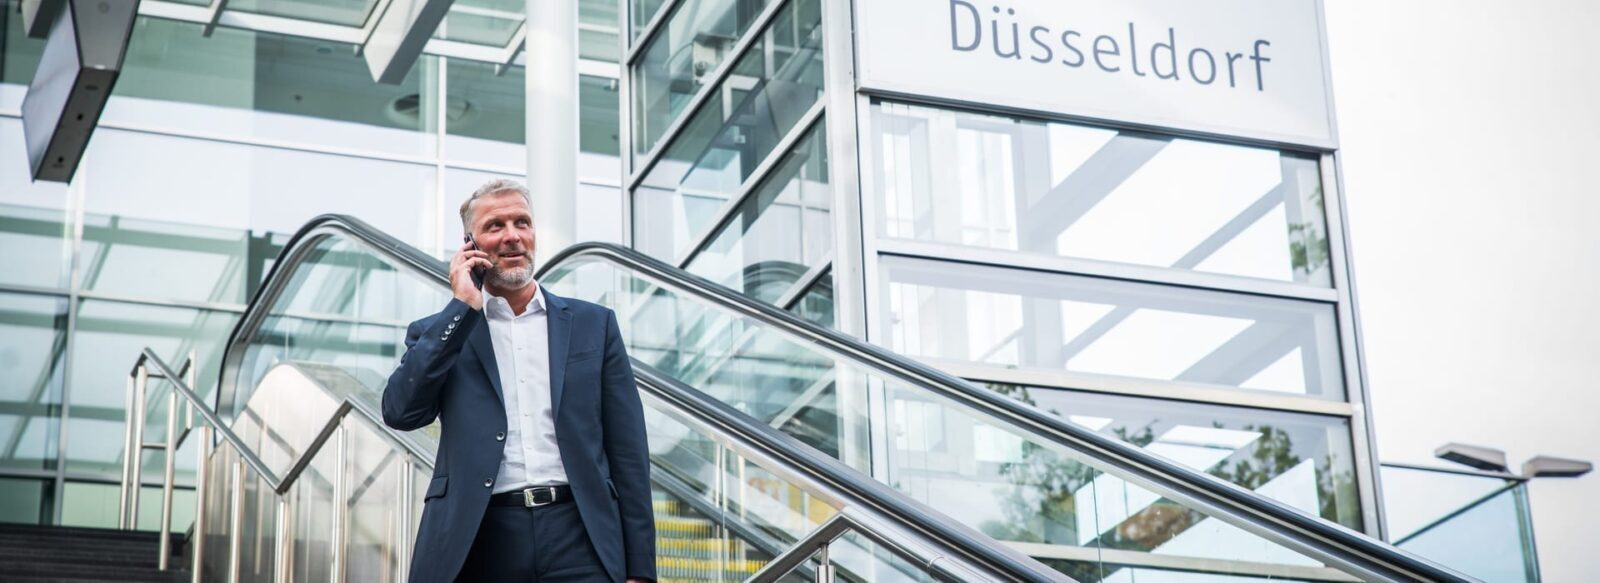 Leistungen Hotels Travel Management hm business travel - Diensten